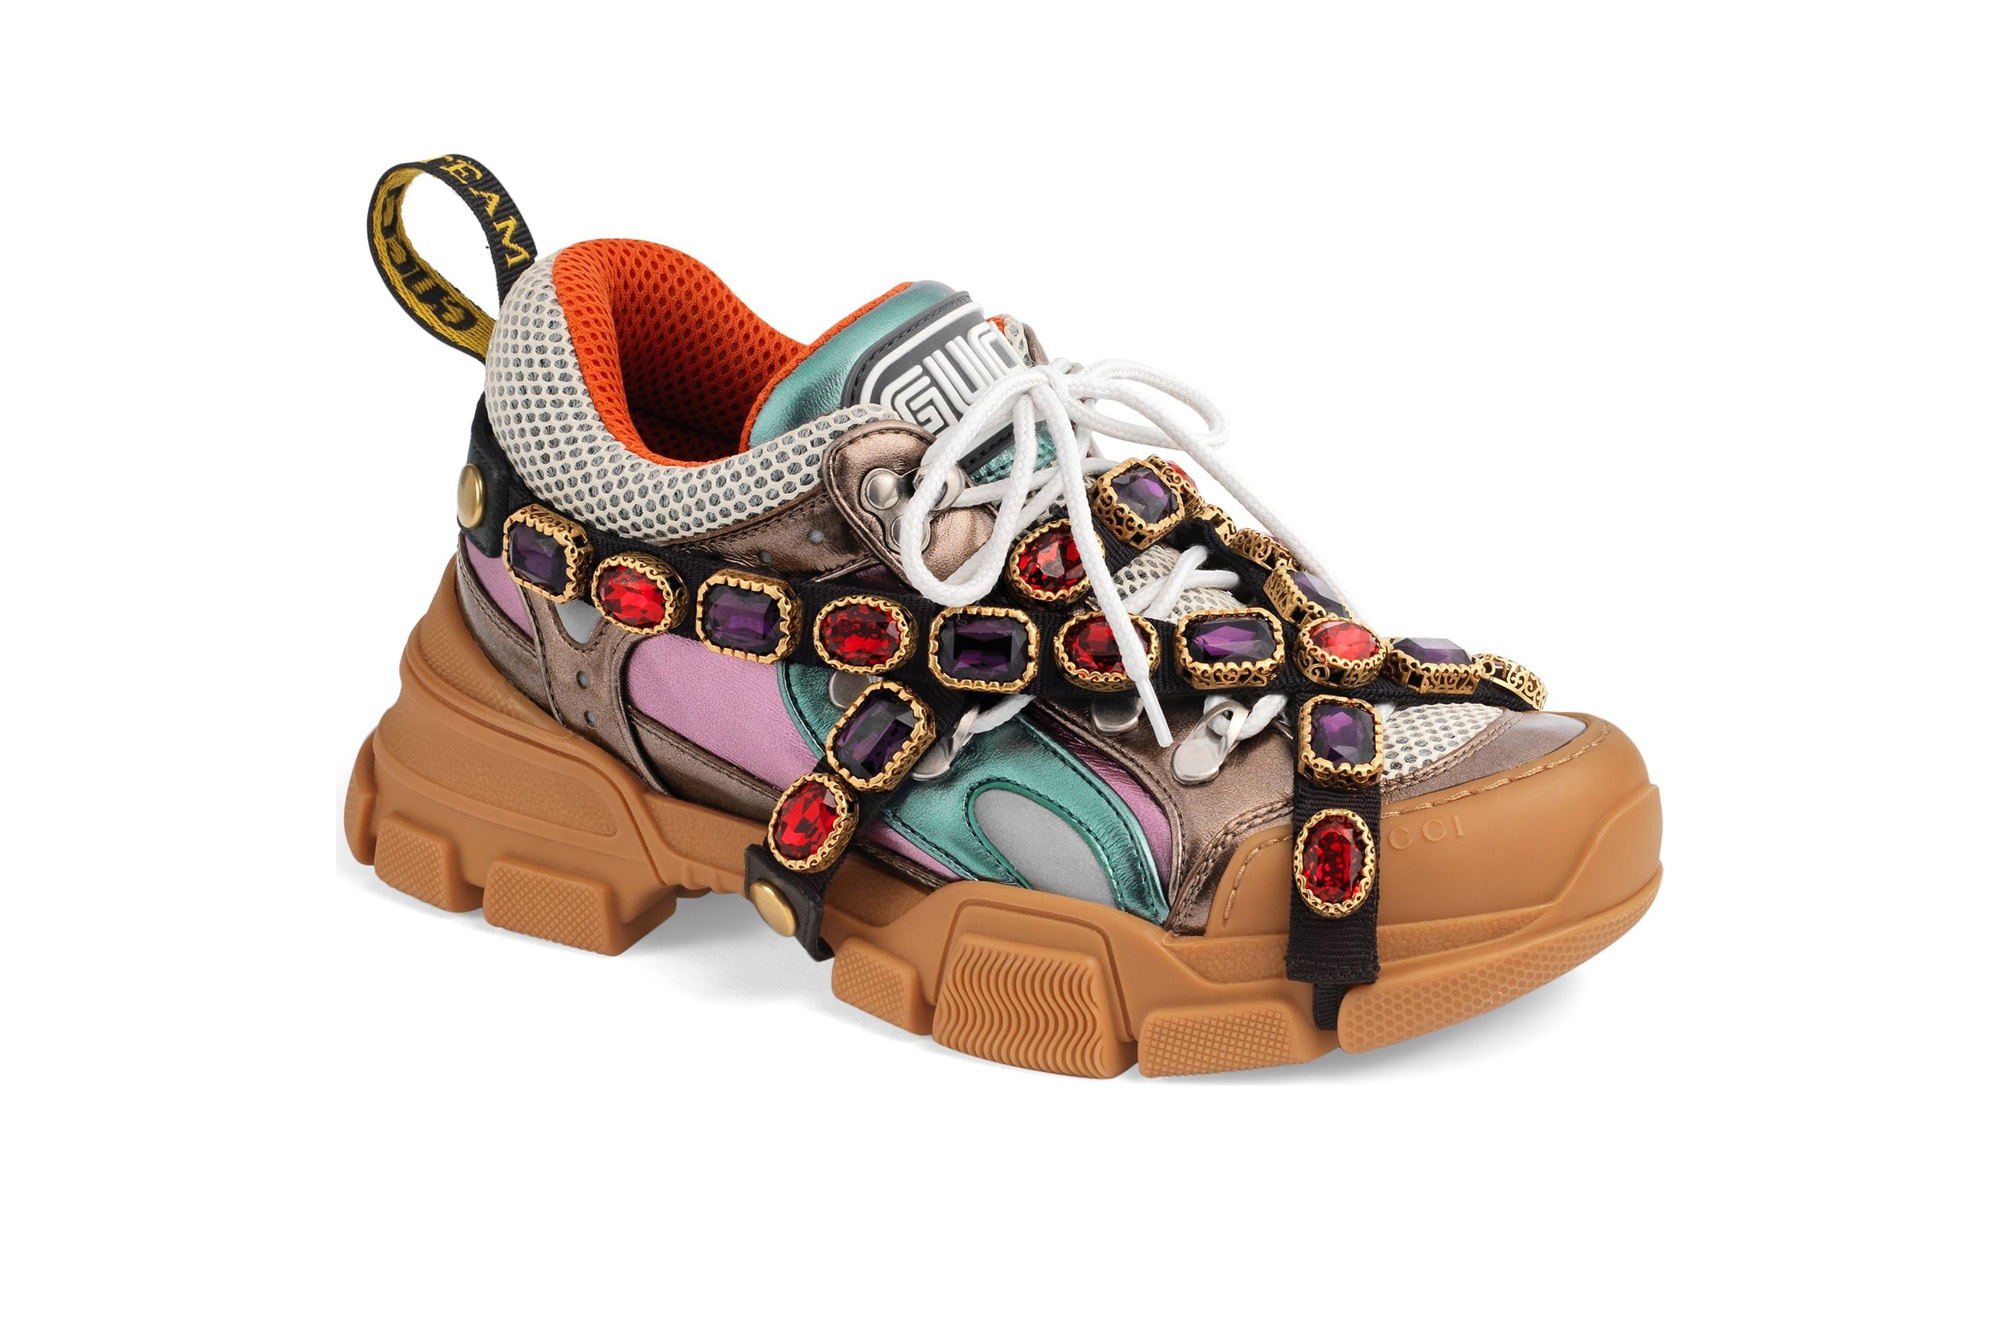 pay $1,590 for these Gucci sneakers